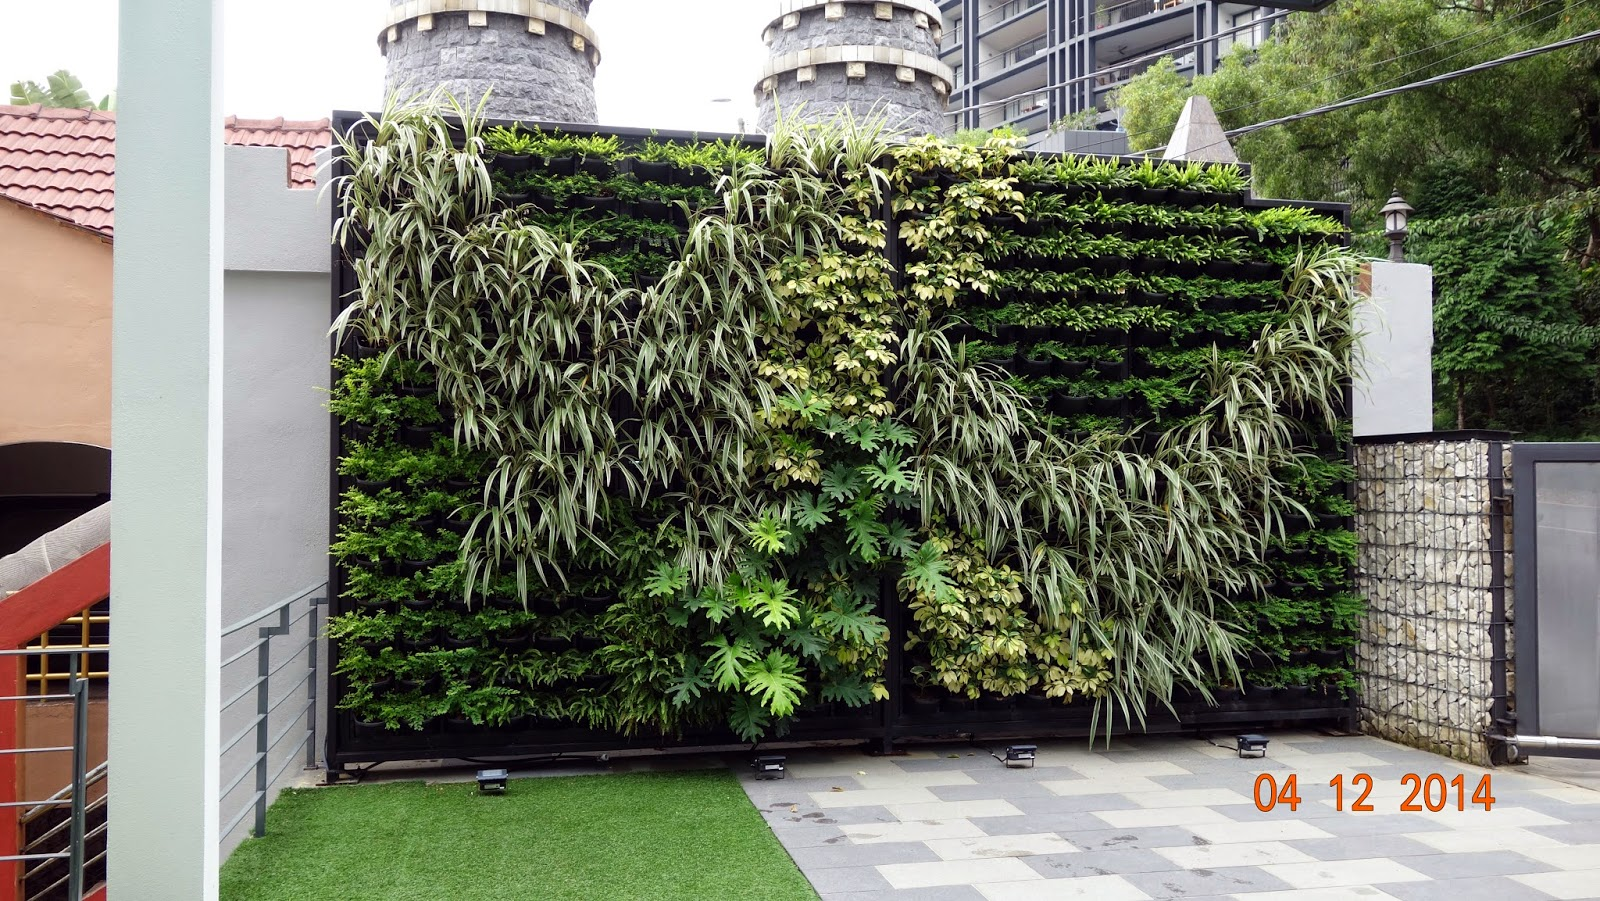 Vertical Wall Planters Outdoor Part - 41: Different Texture And Type Of Plants Being Used For This Outdoor Vertical  Garden System For A Luxurious Villa @ Bangsar, Kuala Lumpur, Malaysia.